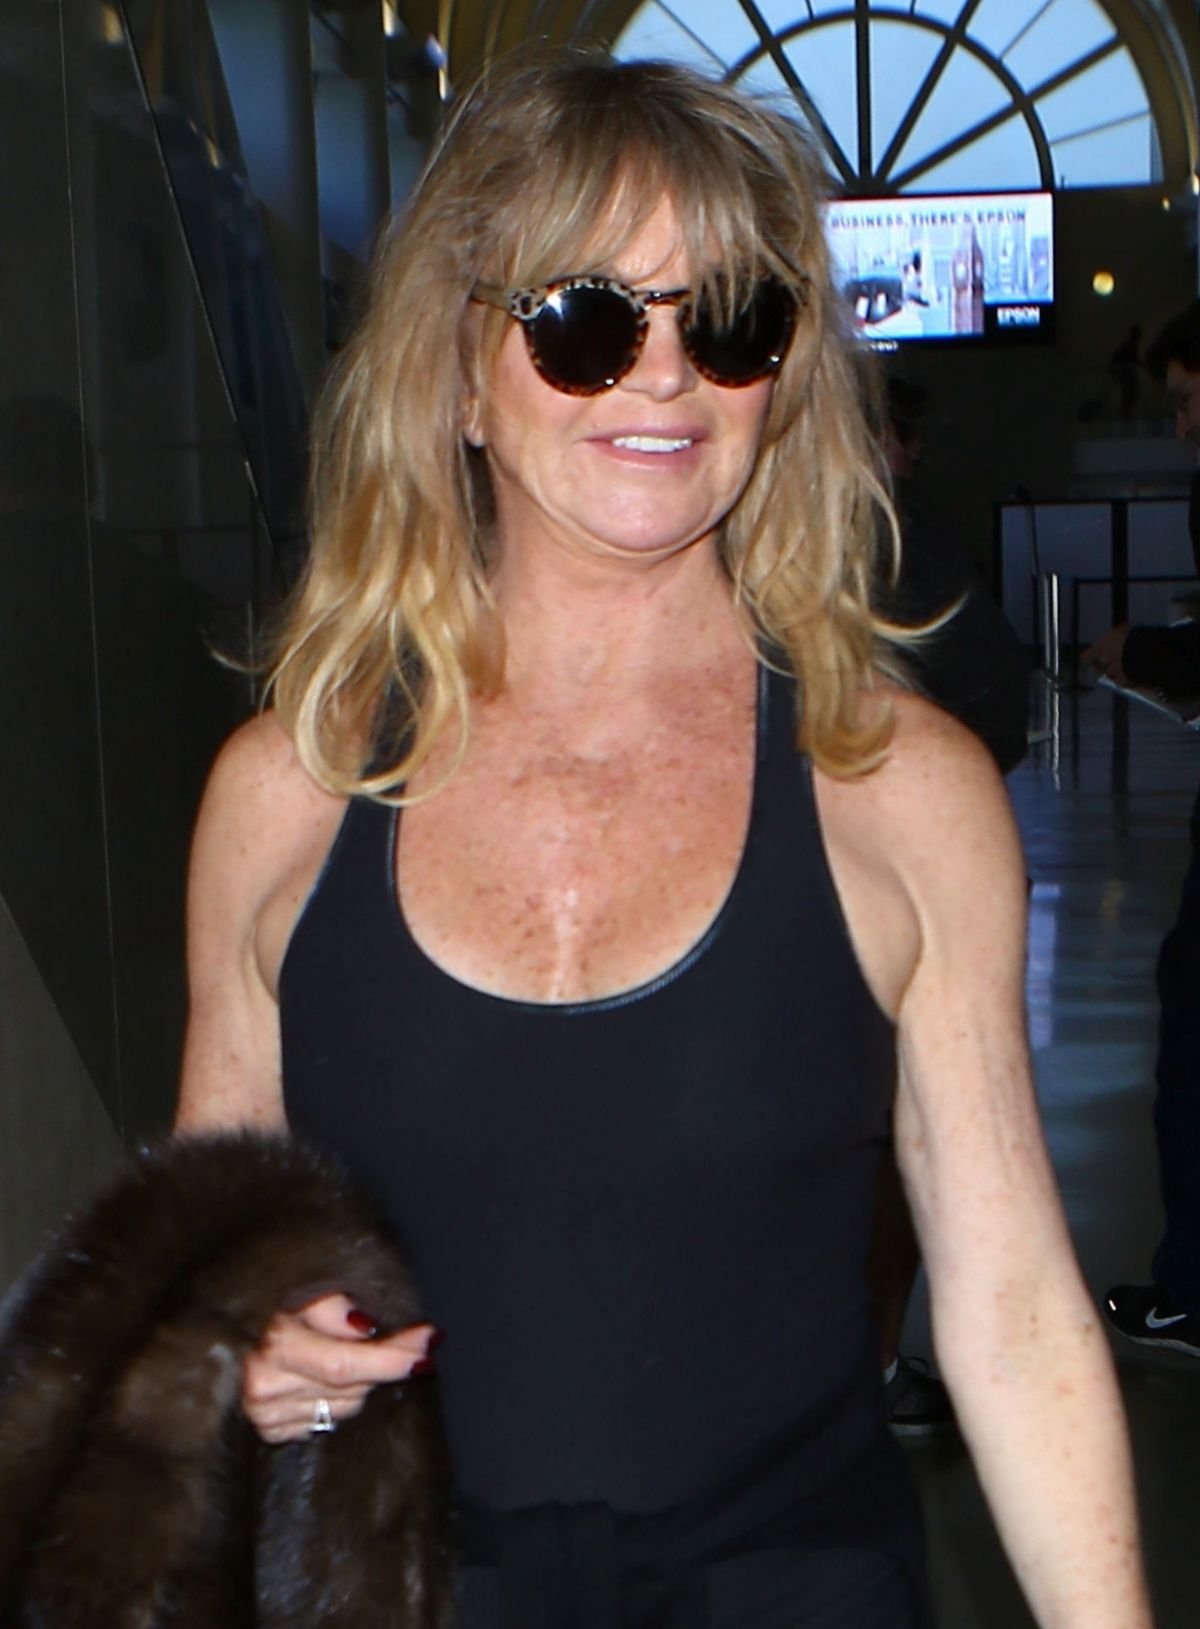 GOLDIE HAWN at LAX Airport in Los Angeles 03/11/2017 ...